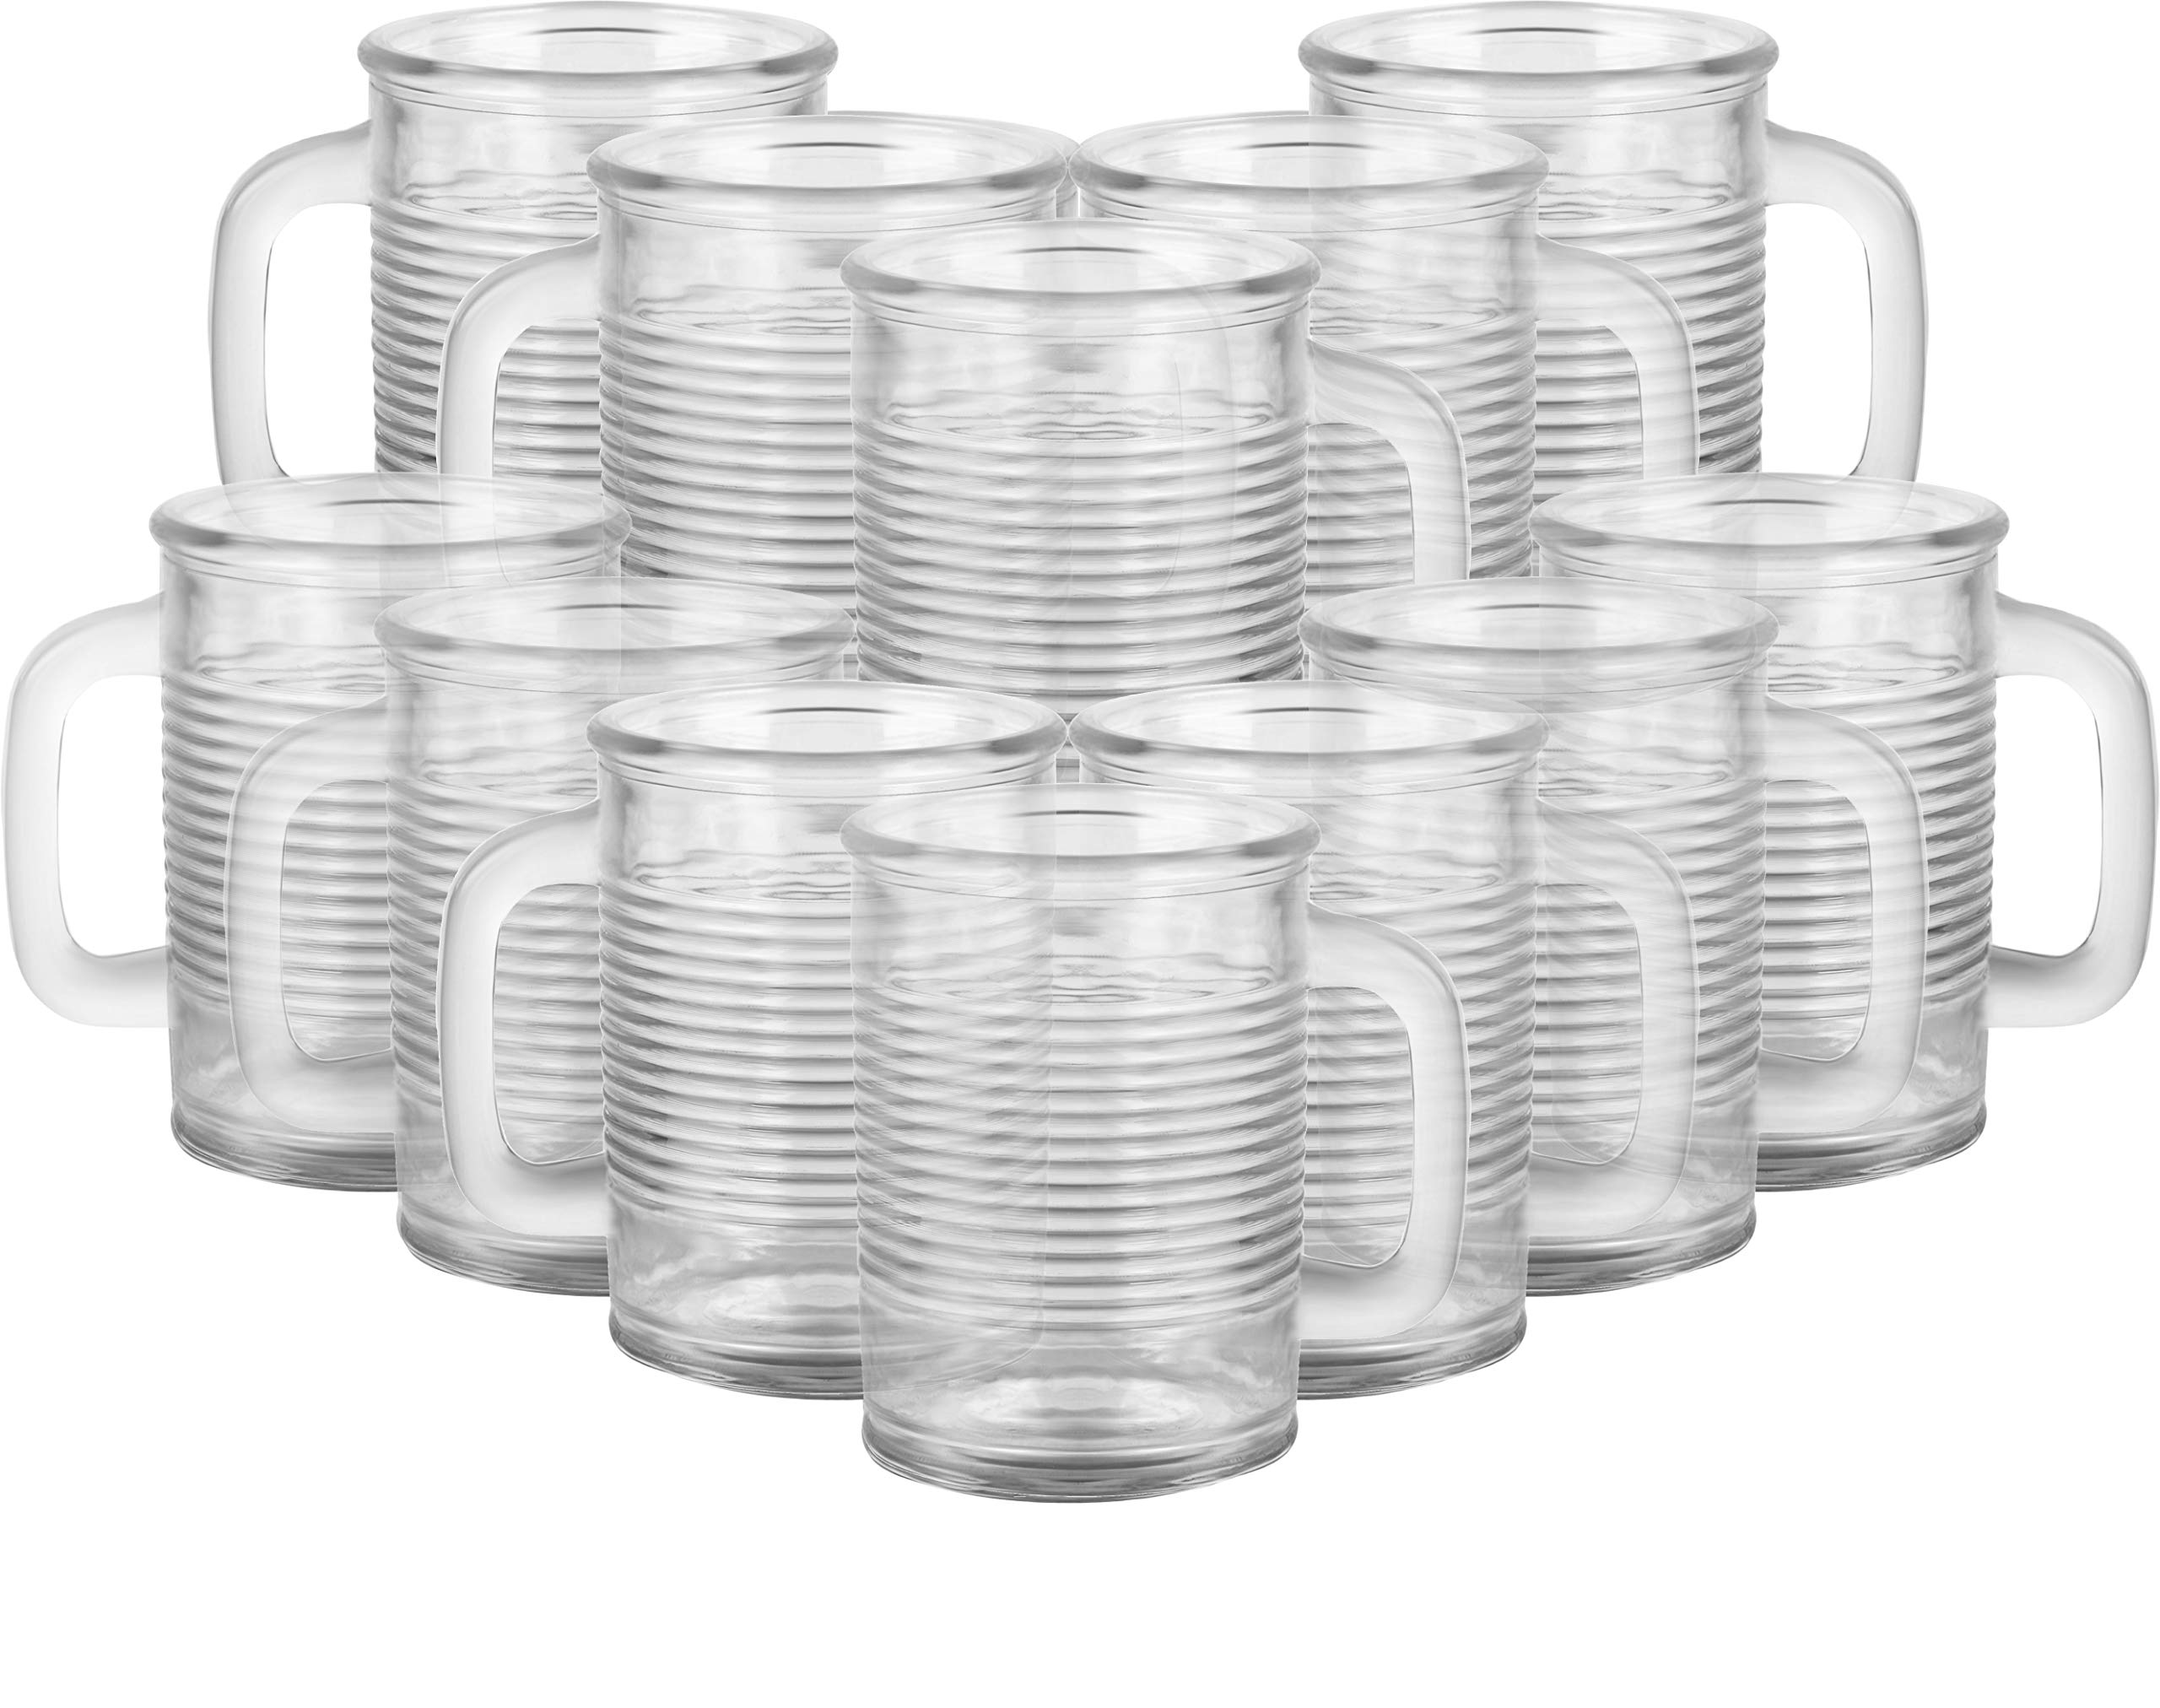 Circleware 04430/AM Huge Set of 12 Mason Jar Mugs in Fun Can Shaped Glasses Home and Kitchen Farmhouse Glassware Décor Drink Tumblers for Water, Beer, Whiskey and Cold Beverages, 17.5 oz, Clear